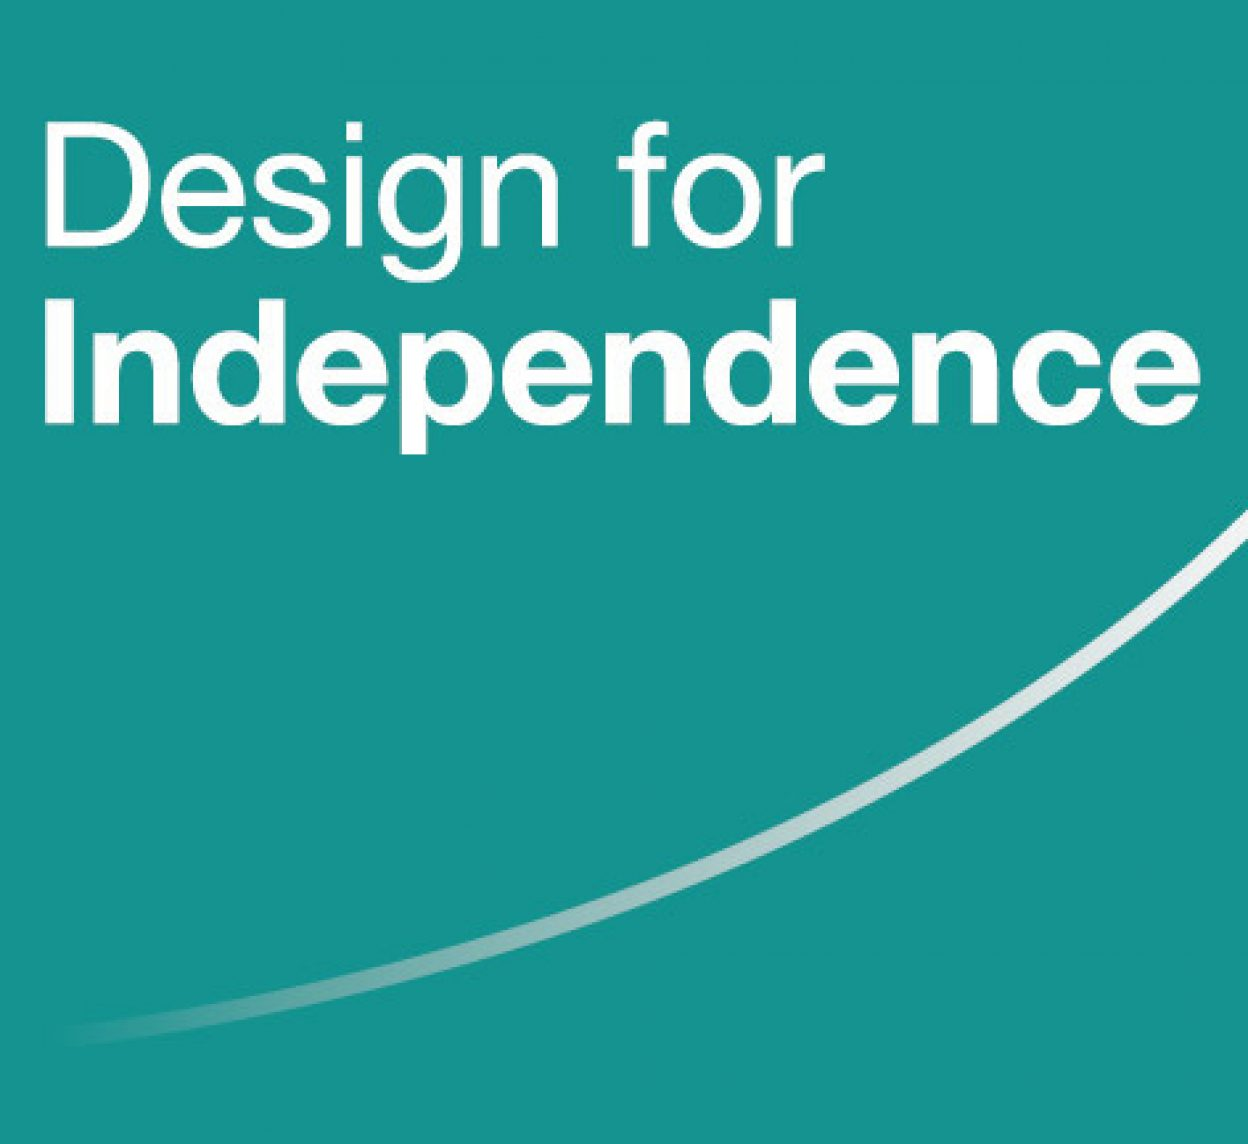 Design for Independence Logo